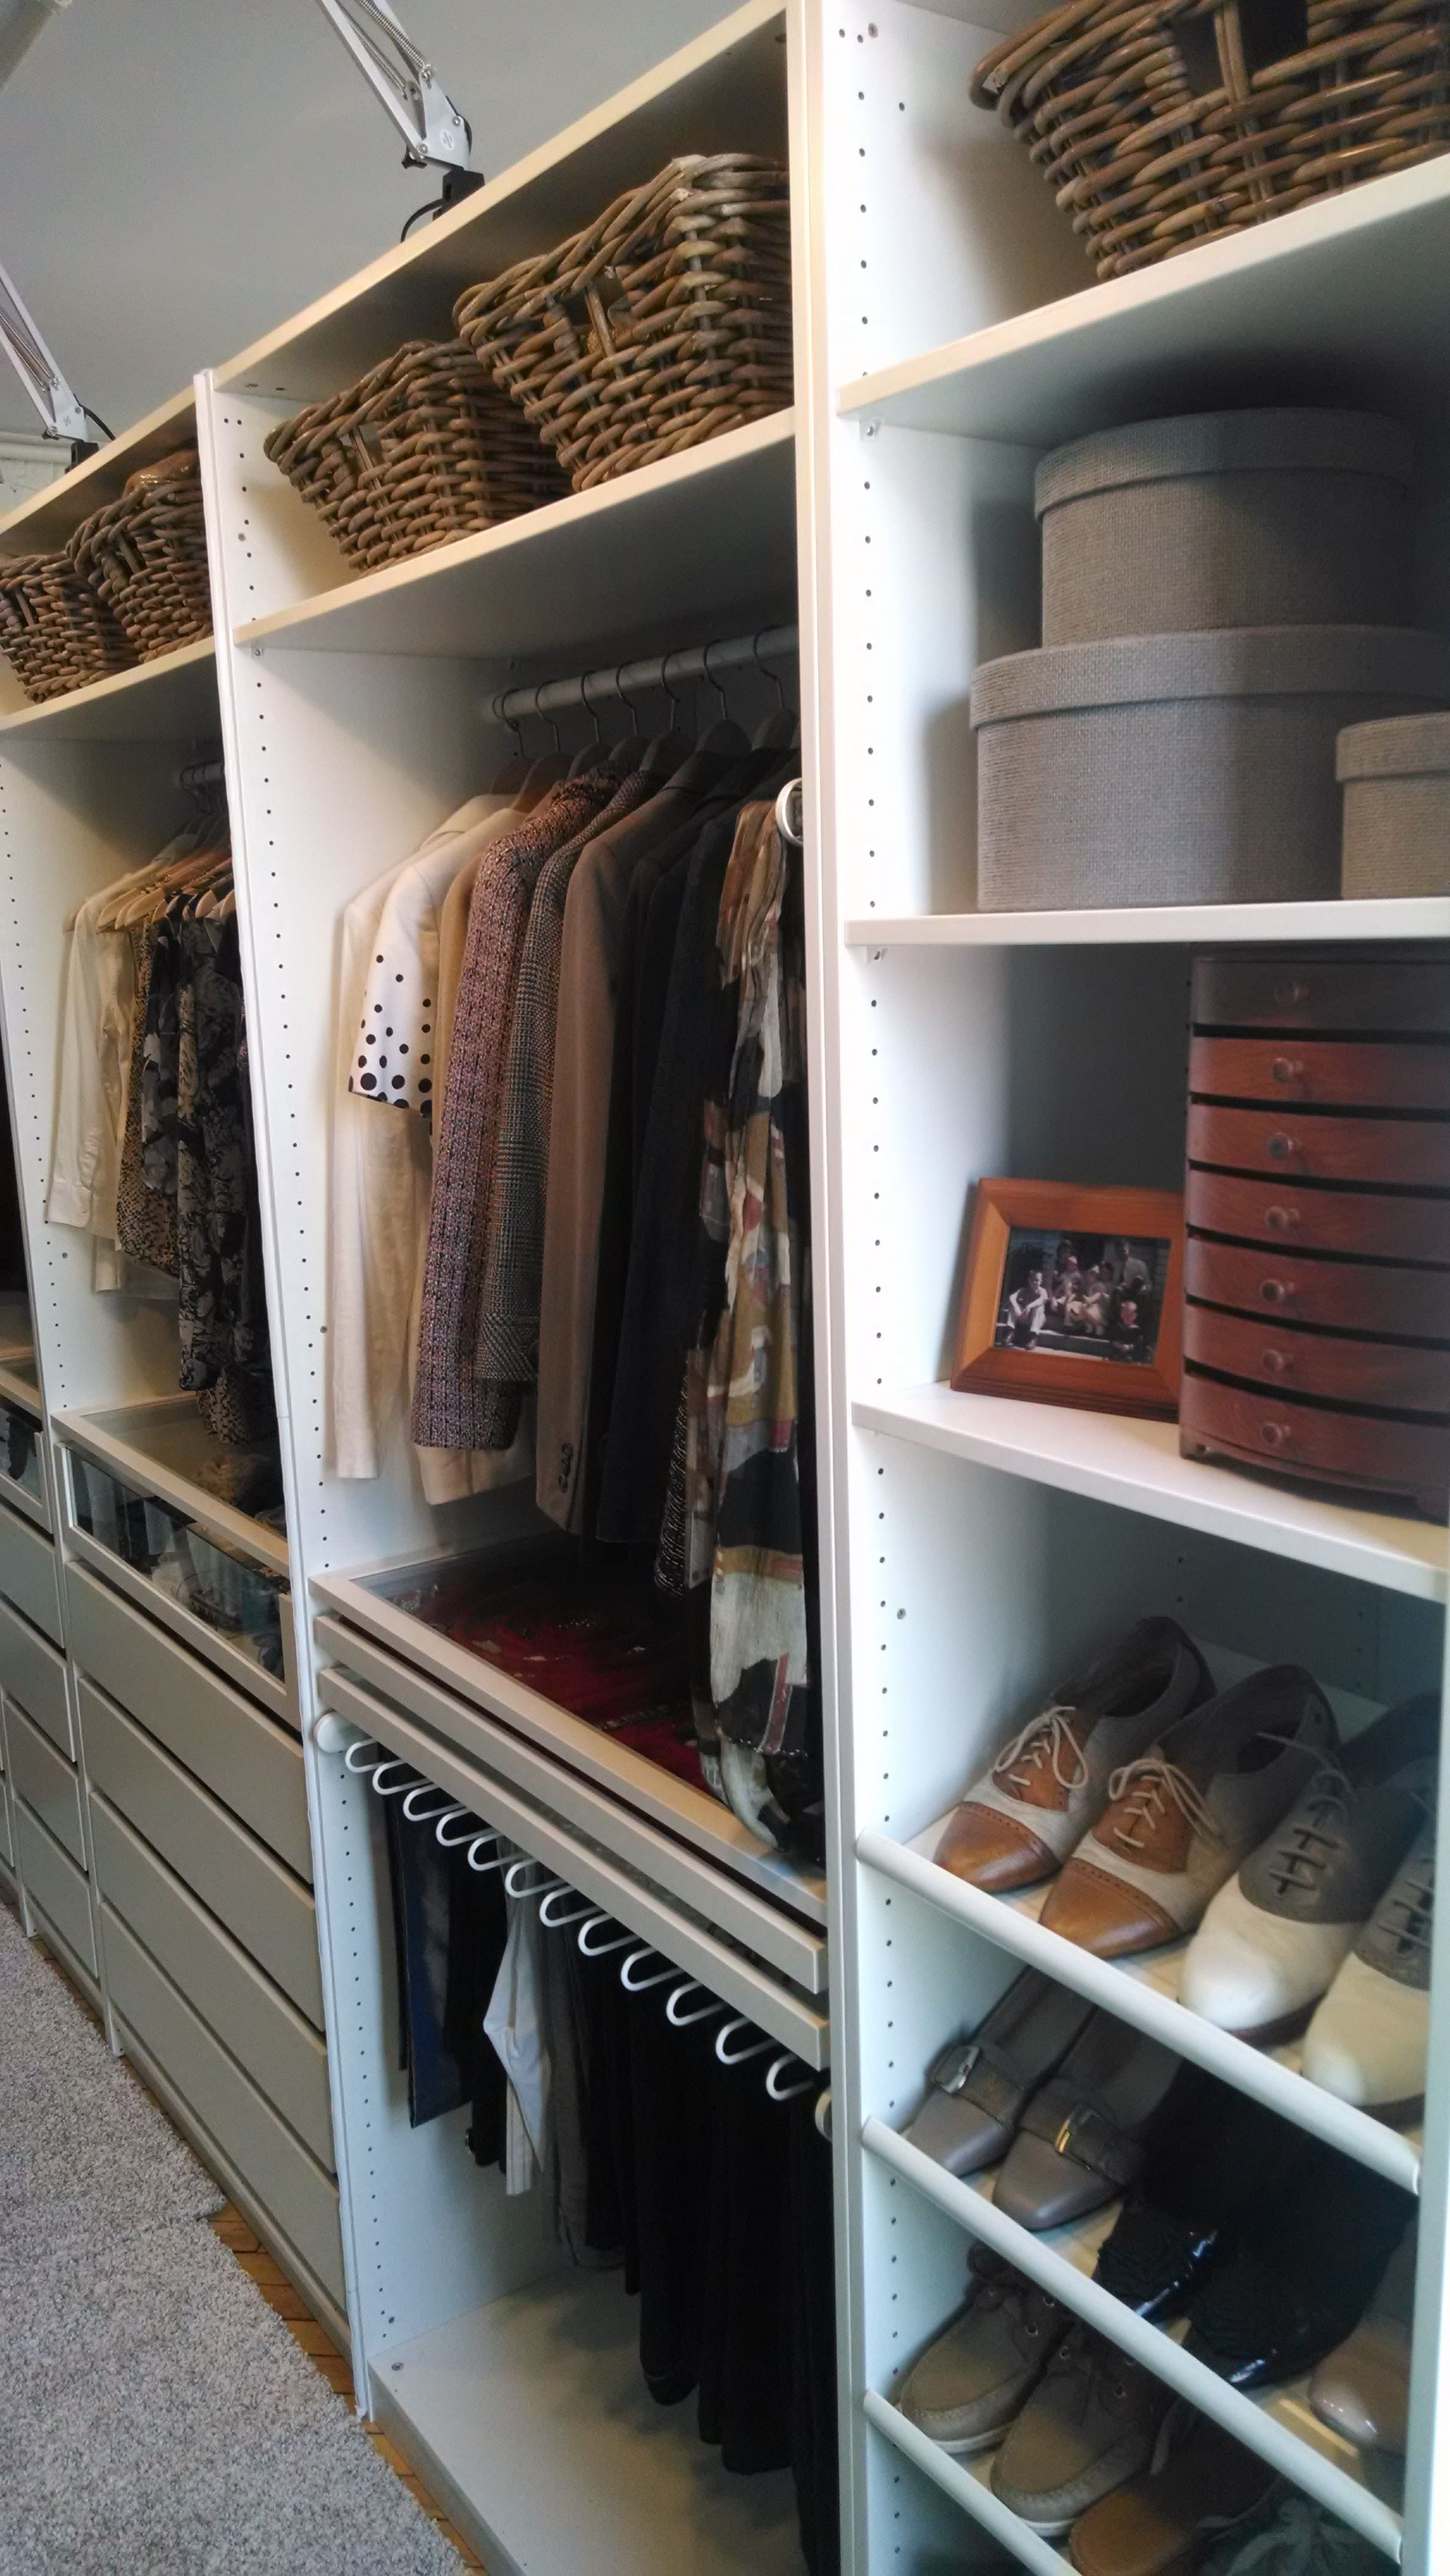 create a custom wardrobe system with the pax series! choose your